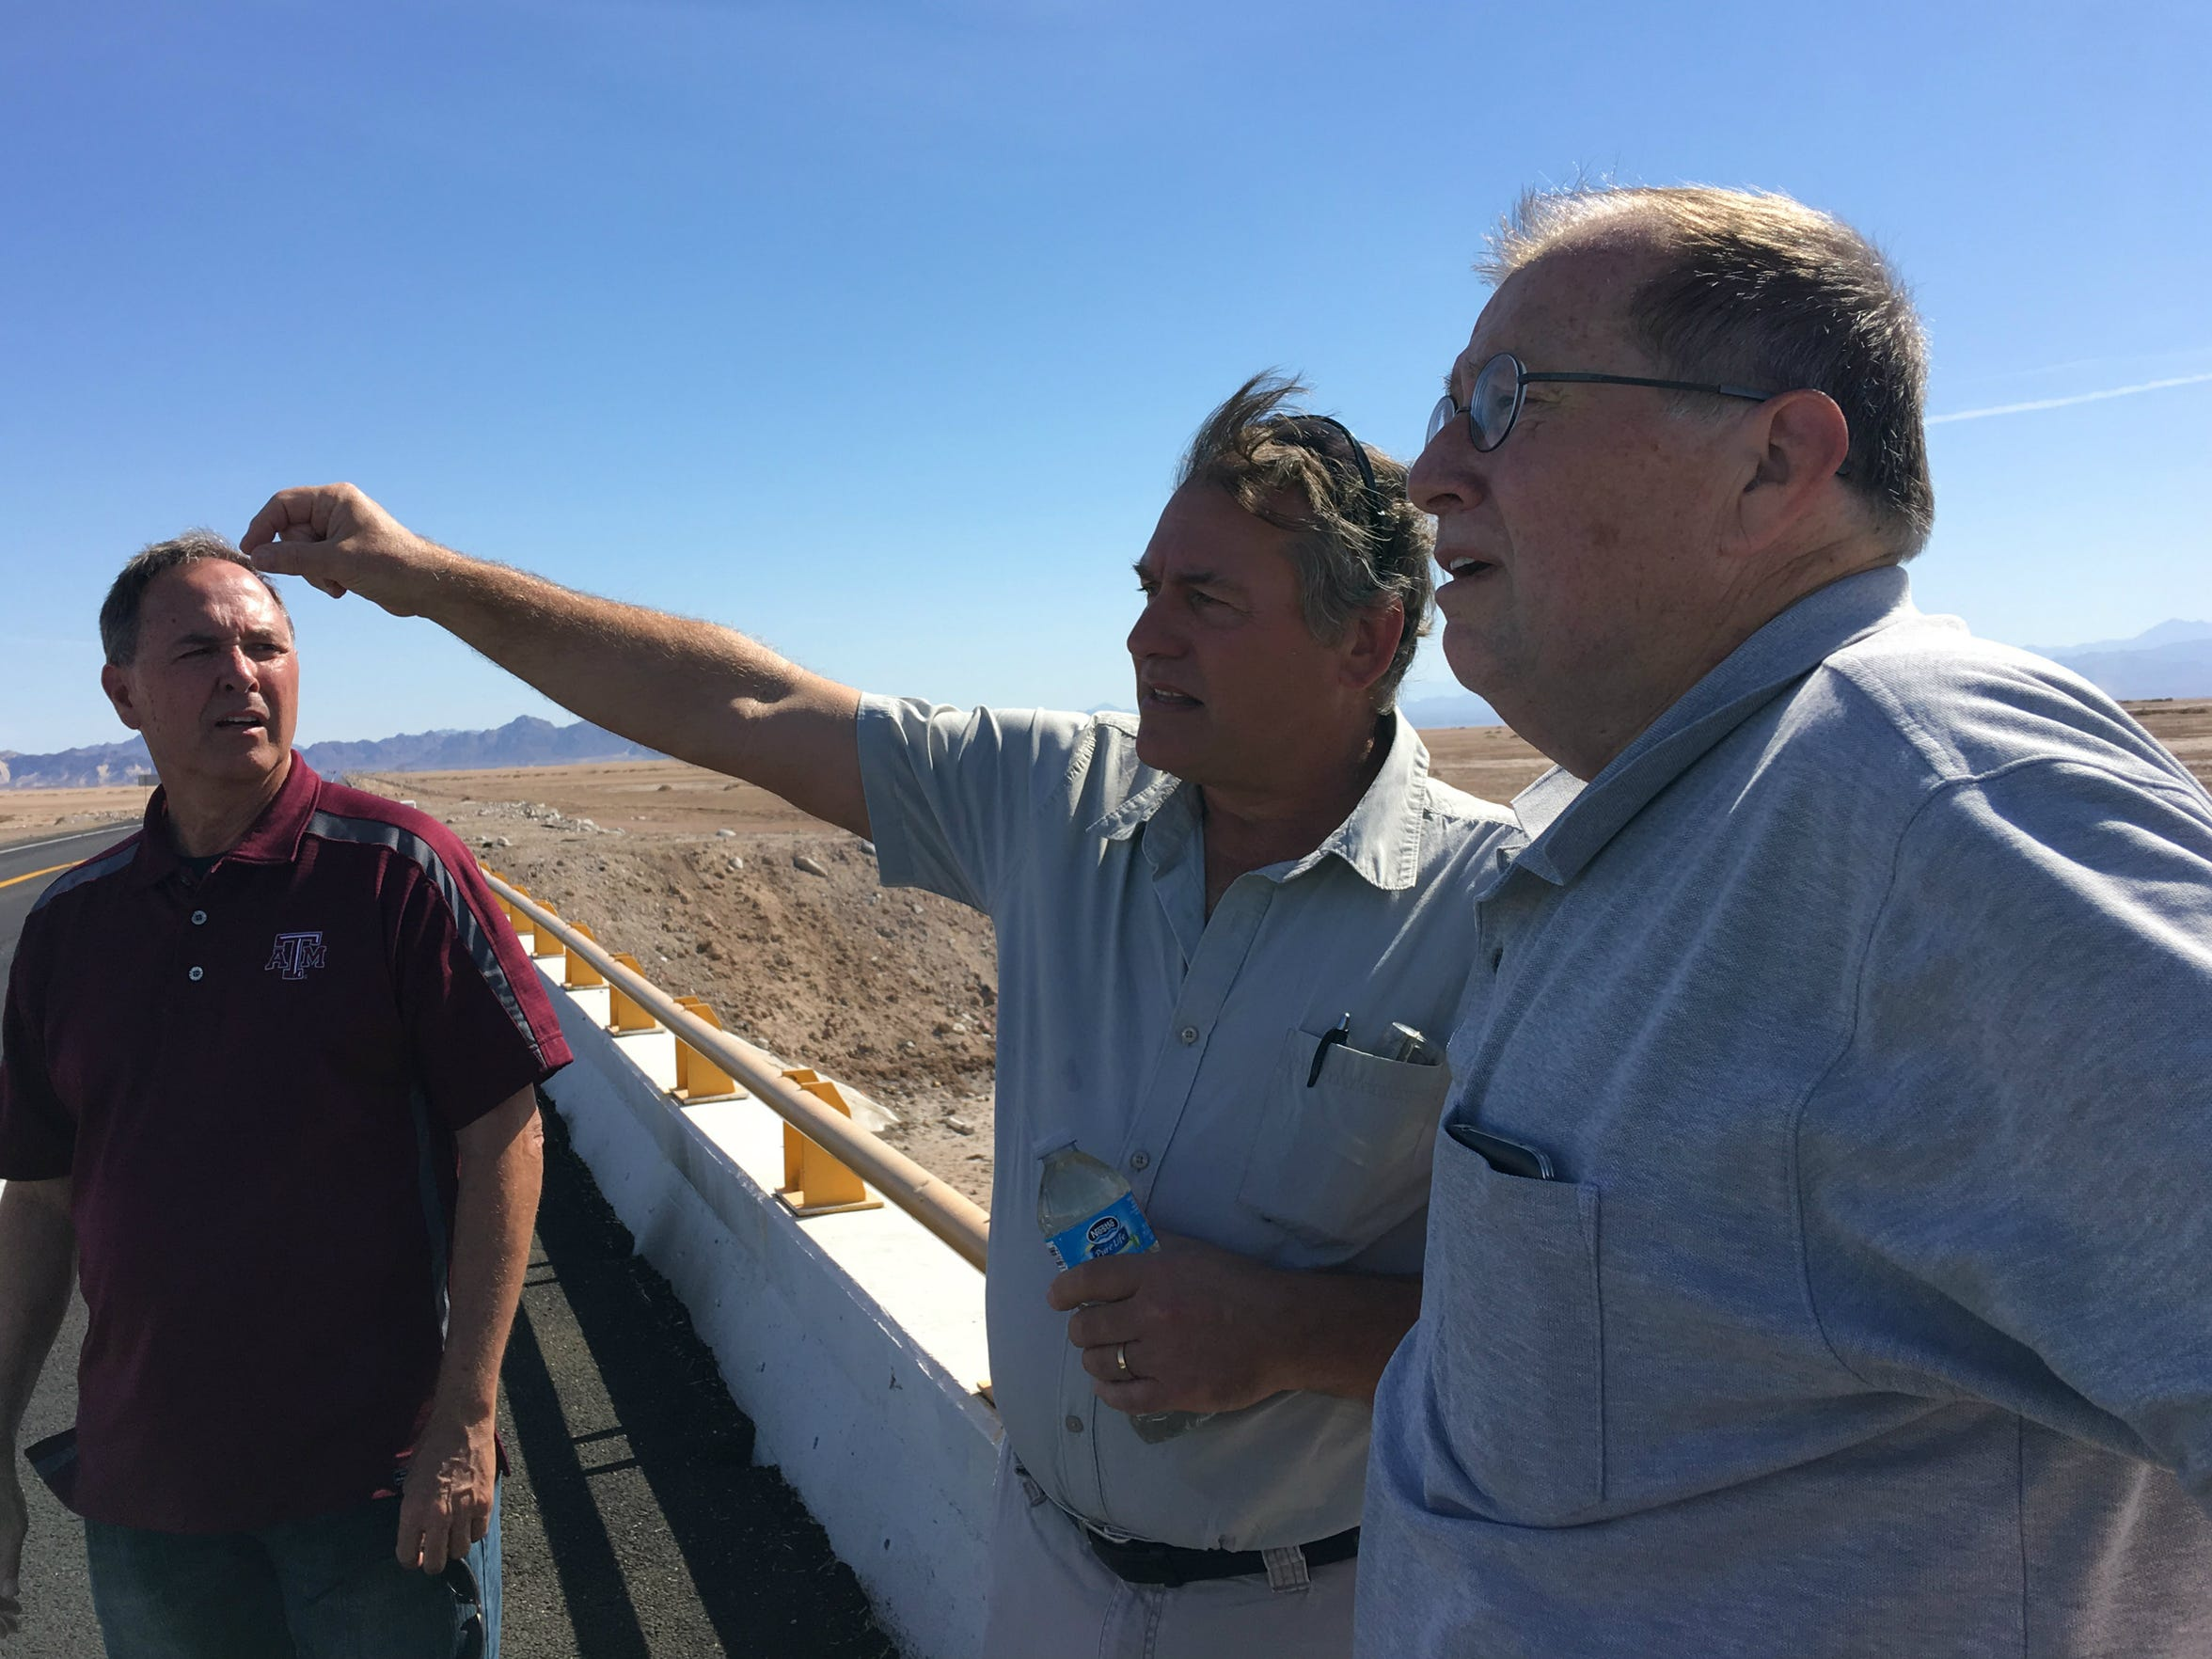 Bruce Wilcox, the assistant secretary for Salton Sea policy, and Tom Sephton, who runs a desalination plant in the Salton Sea, look toward the Sea of Cortez. Wilcox visited Mexico to meet with people who want to import water to the Salton Sea.